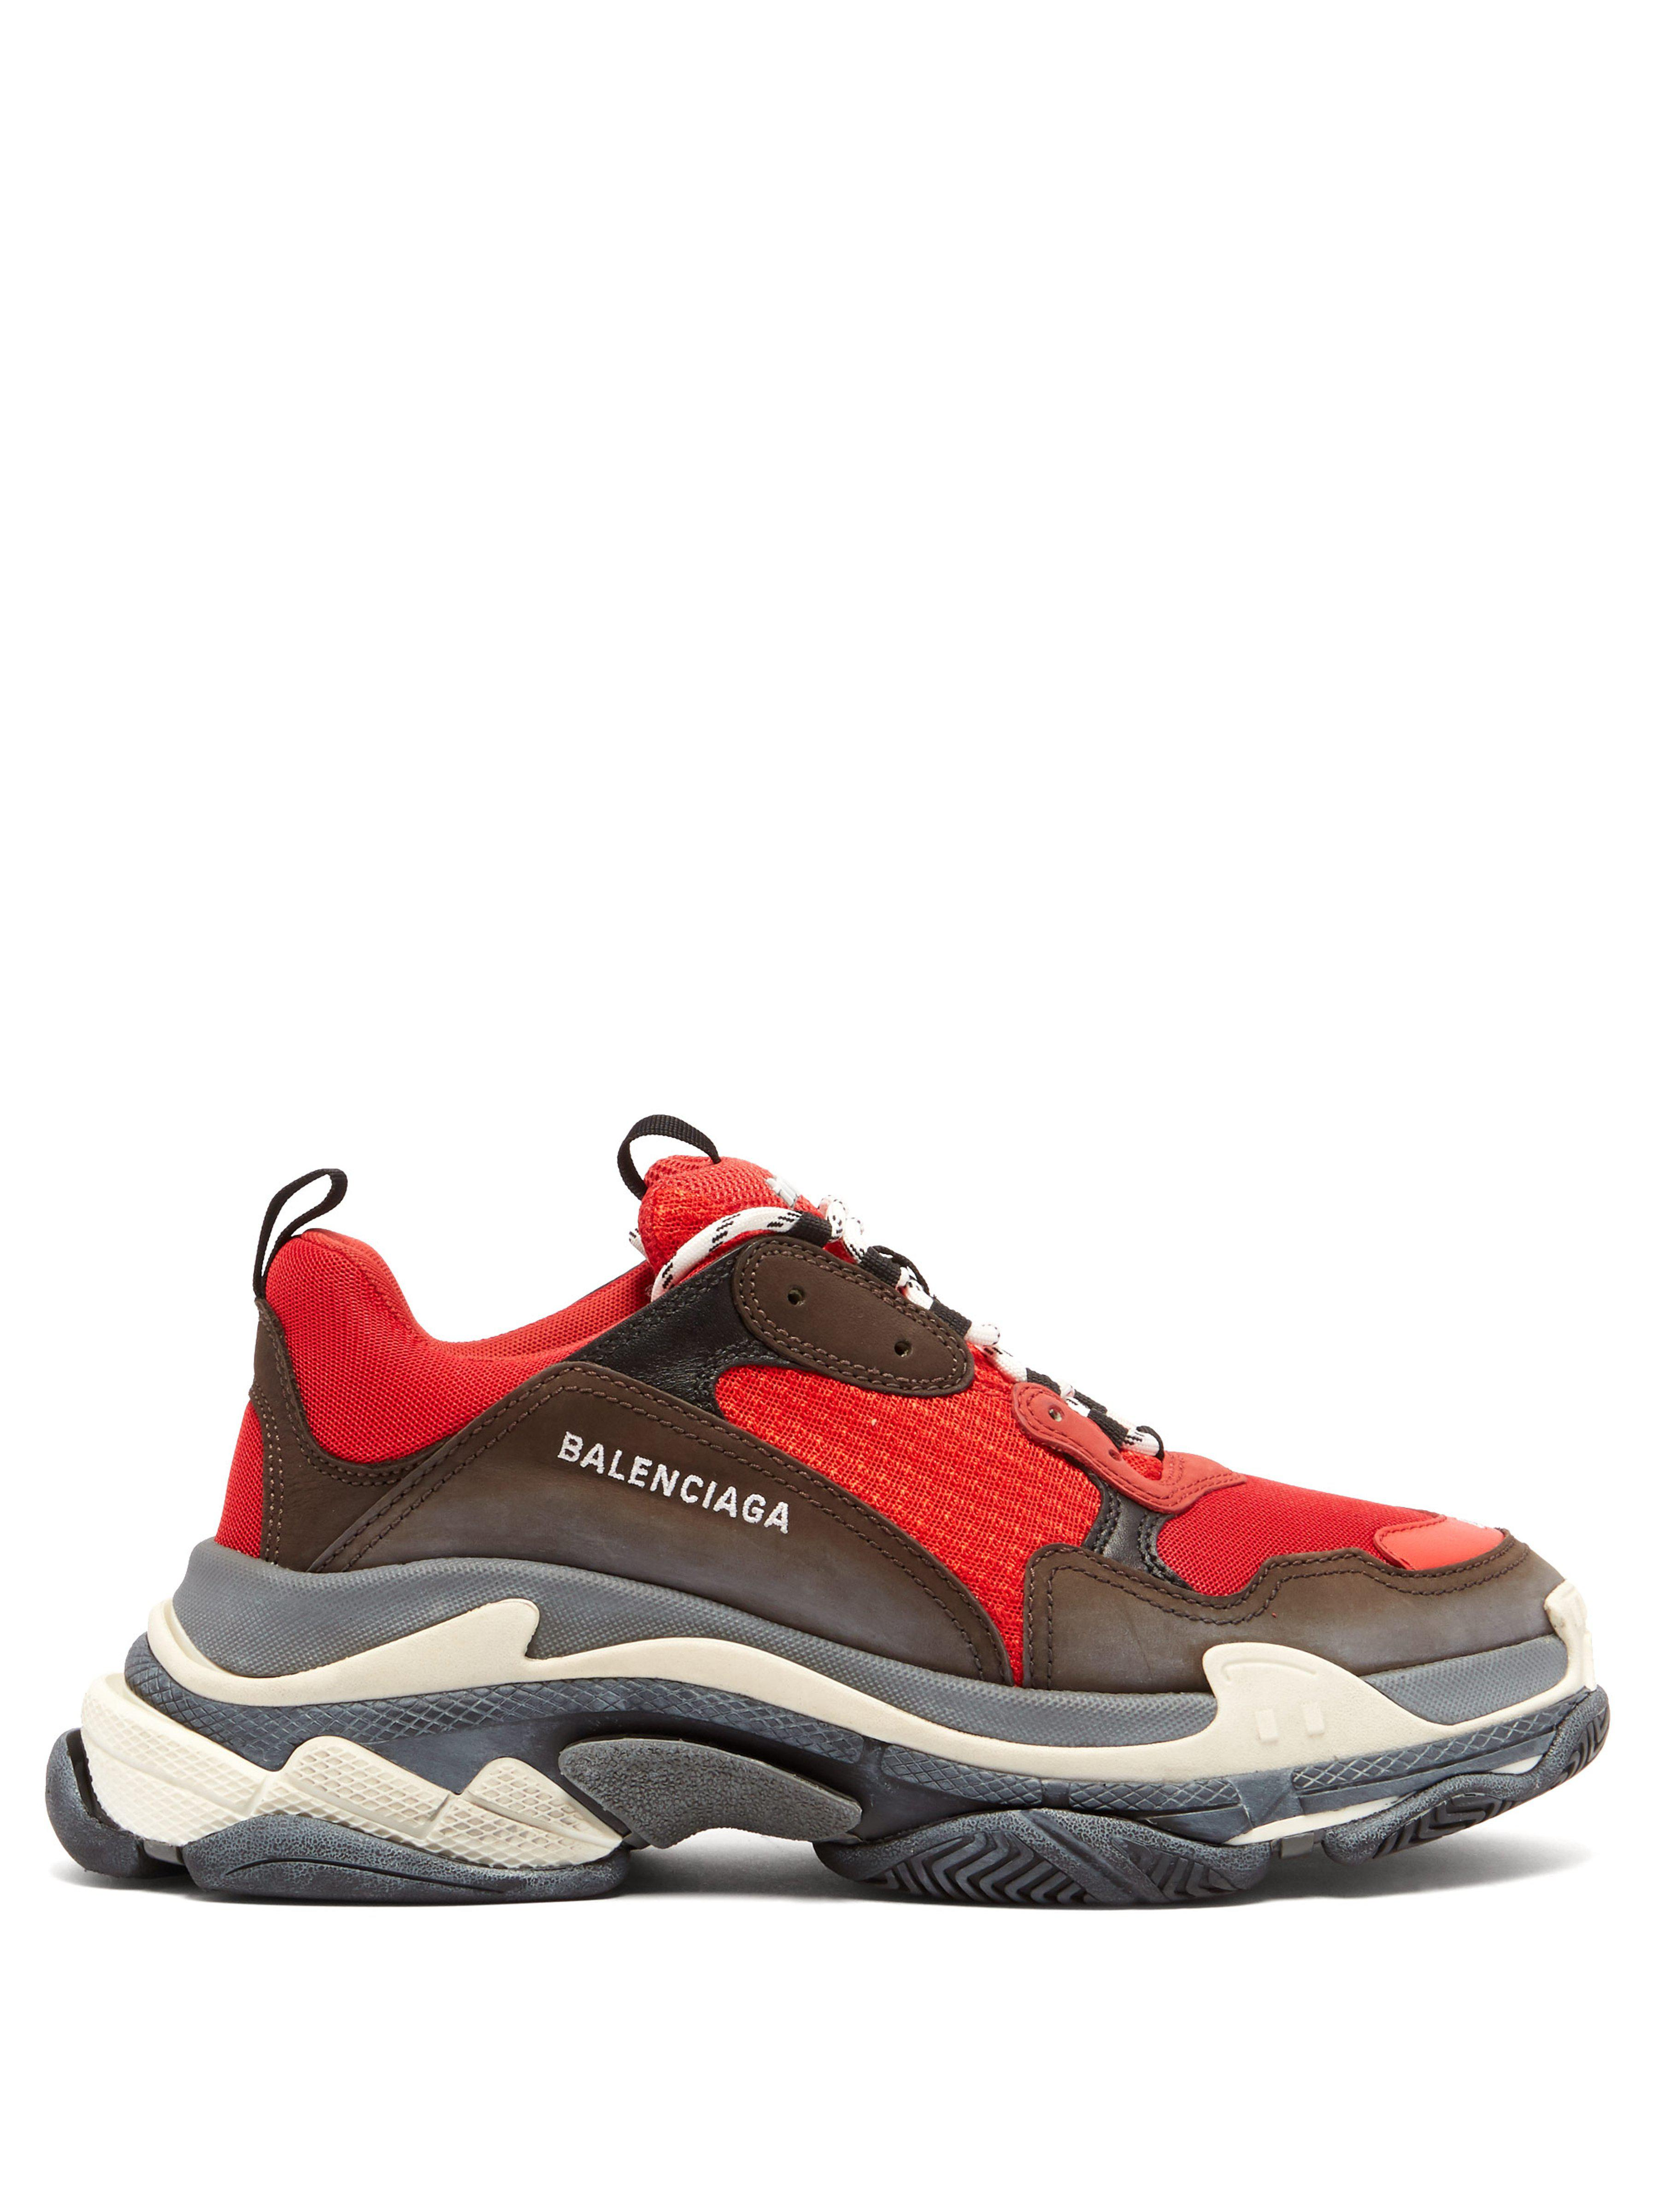 54d4564e52a7 Balenciaga - Black And Red Triple S Sneakers for Men - Lyst. View fullscreen